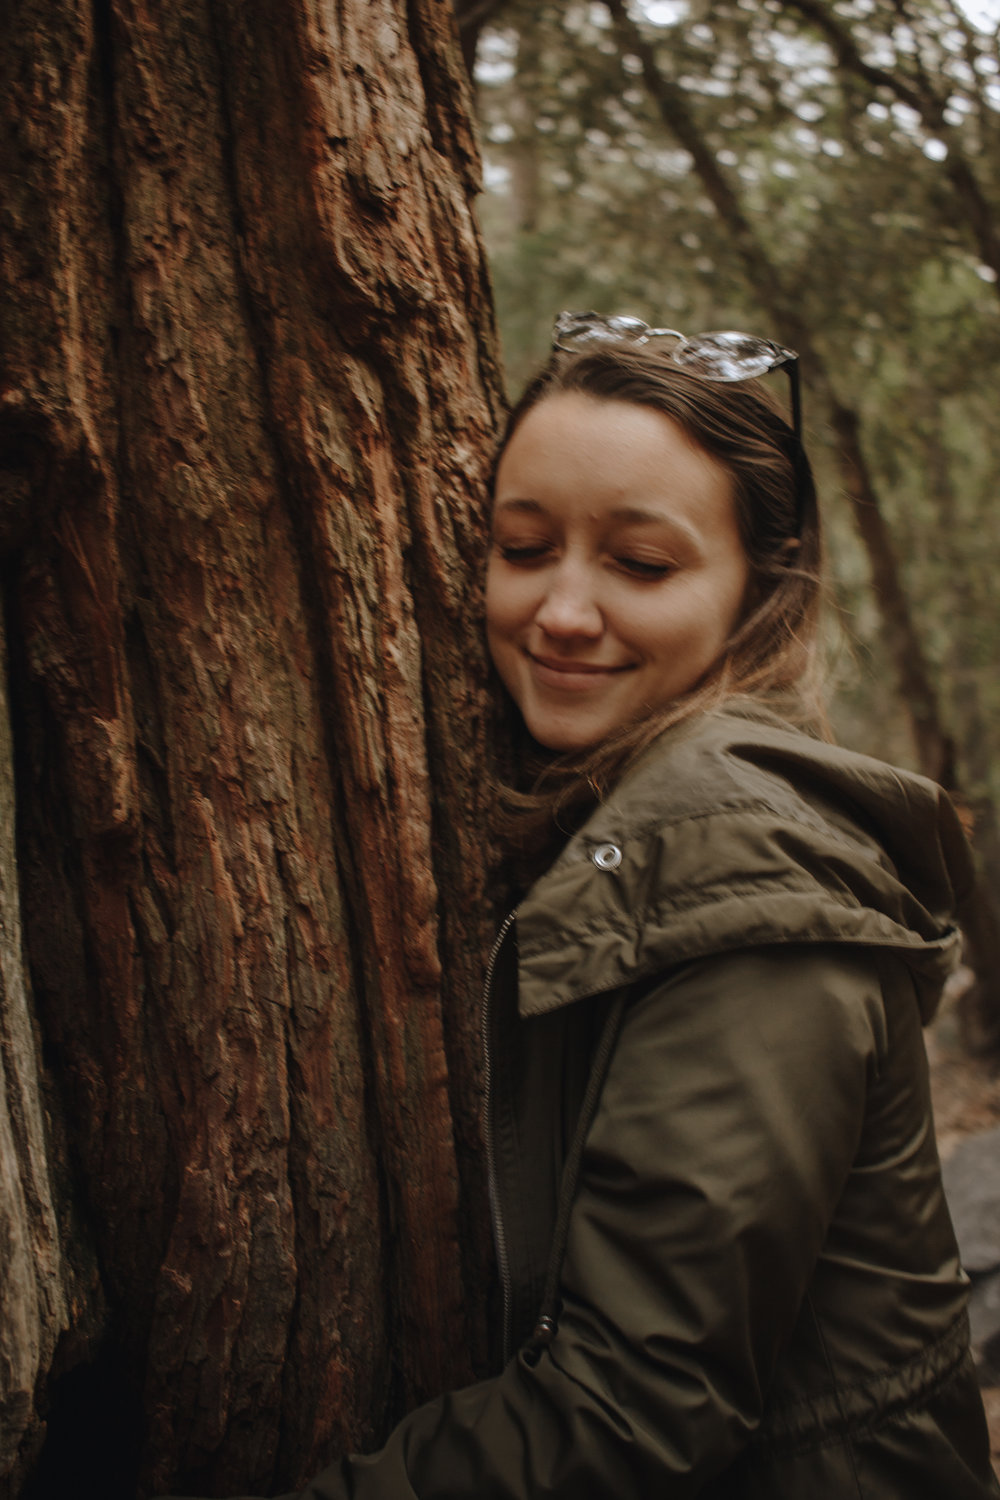 Rach, our resident tree hugger